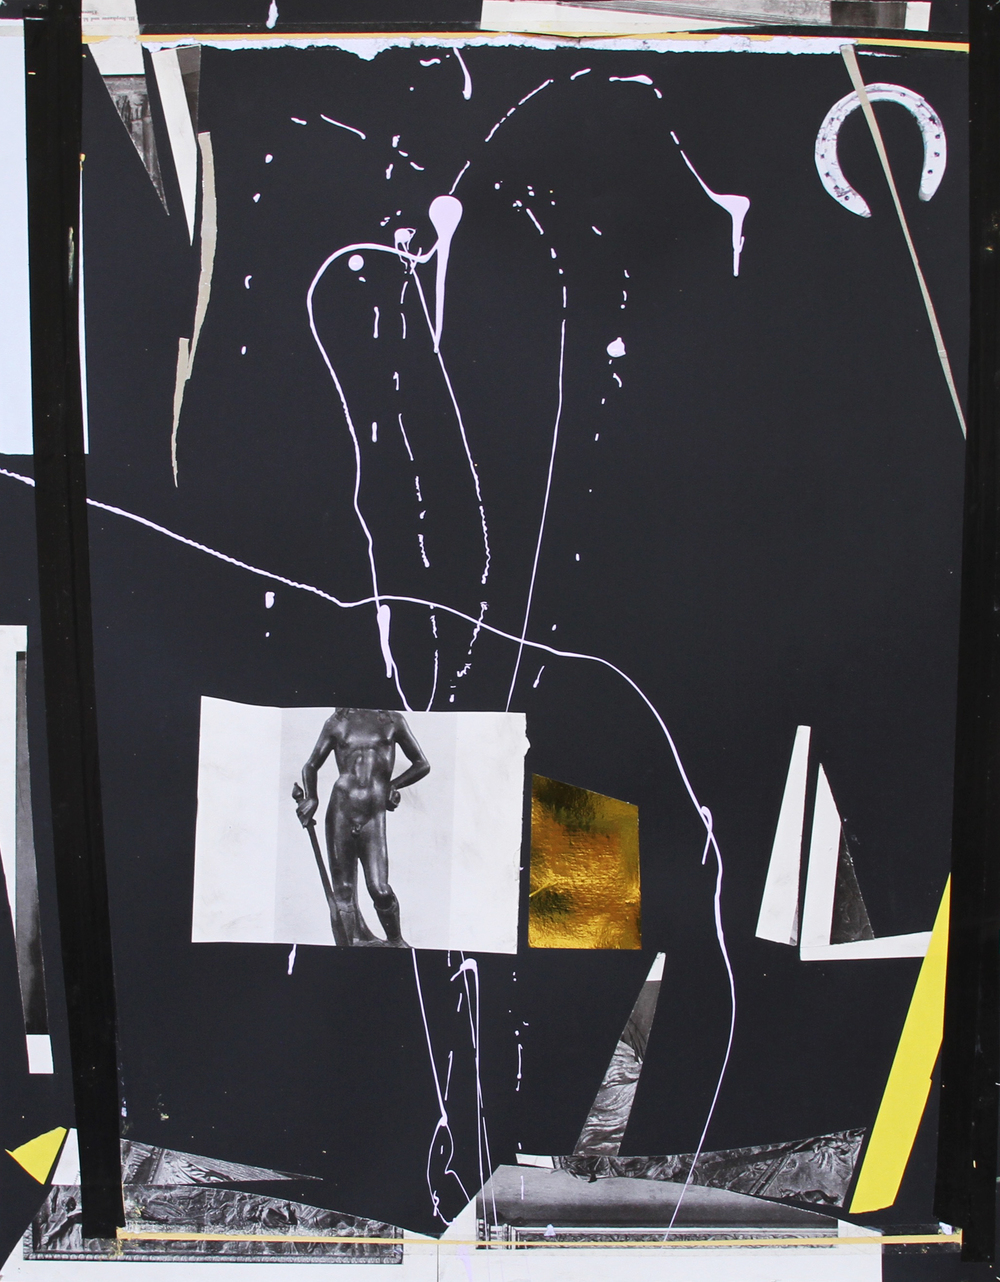 ARRANGEMENT   2016 Acrylic, collage, aluminium and tape on paper 28 x 22 in 71 x 56 cm